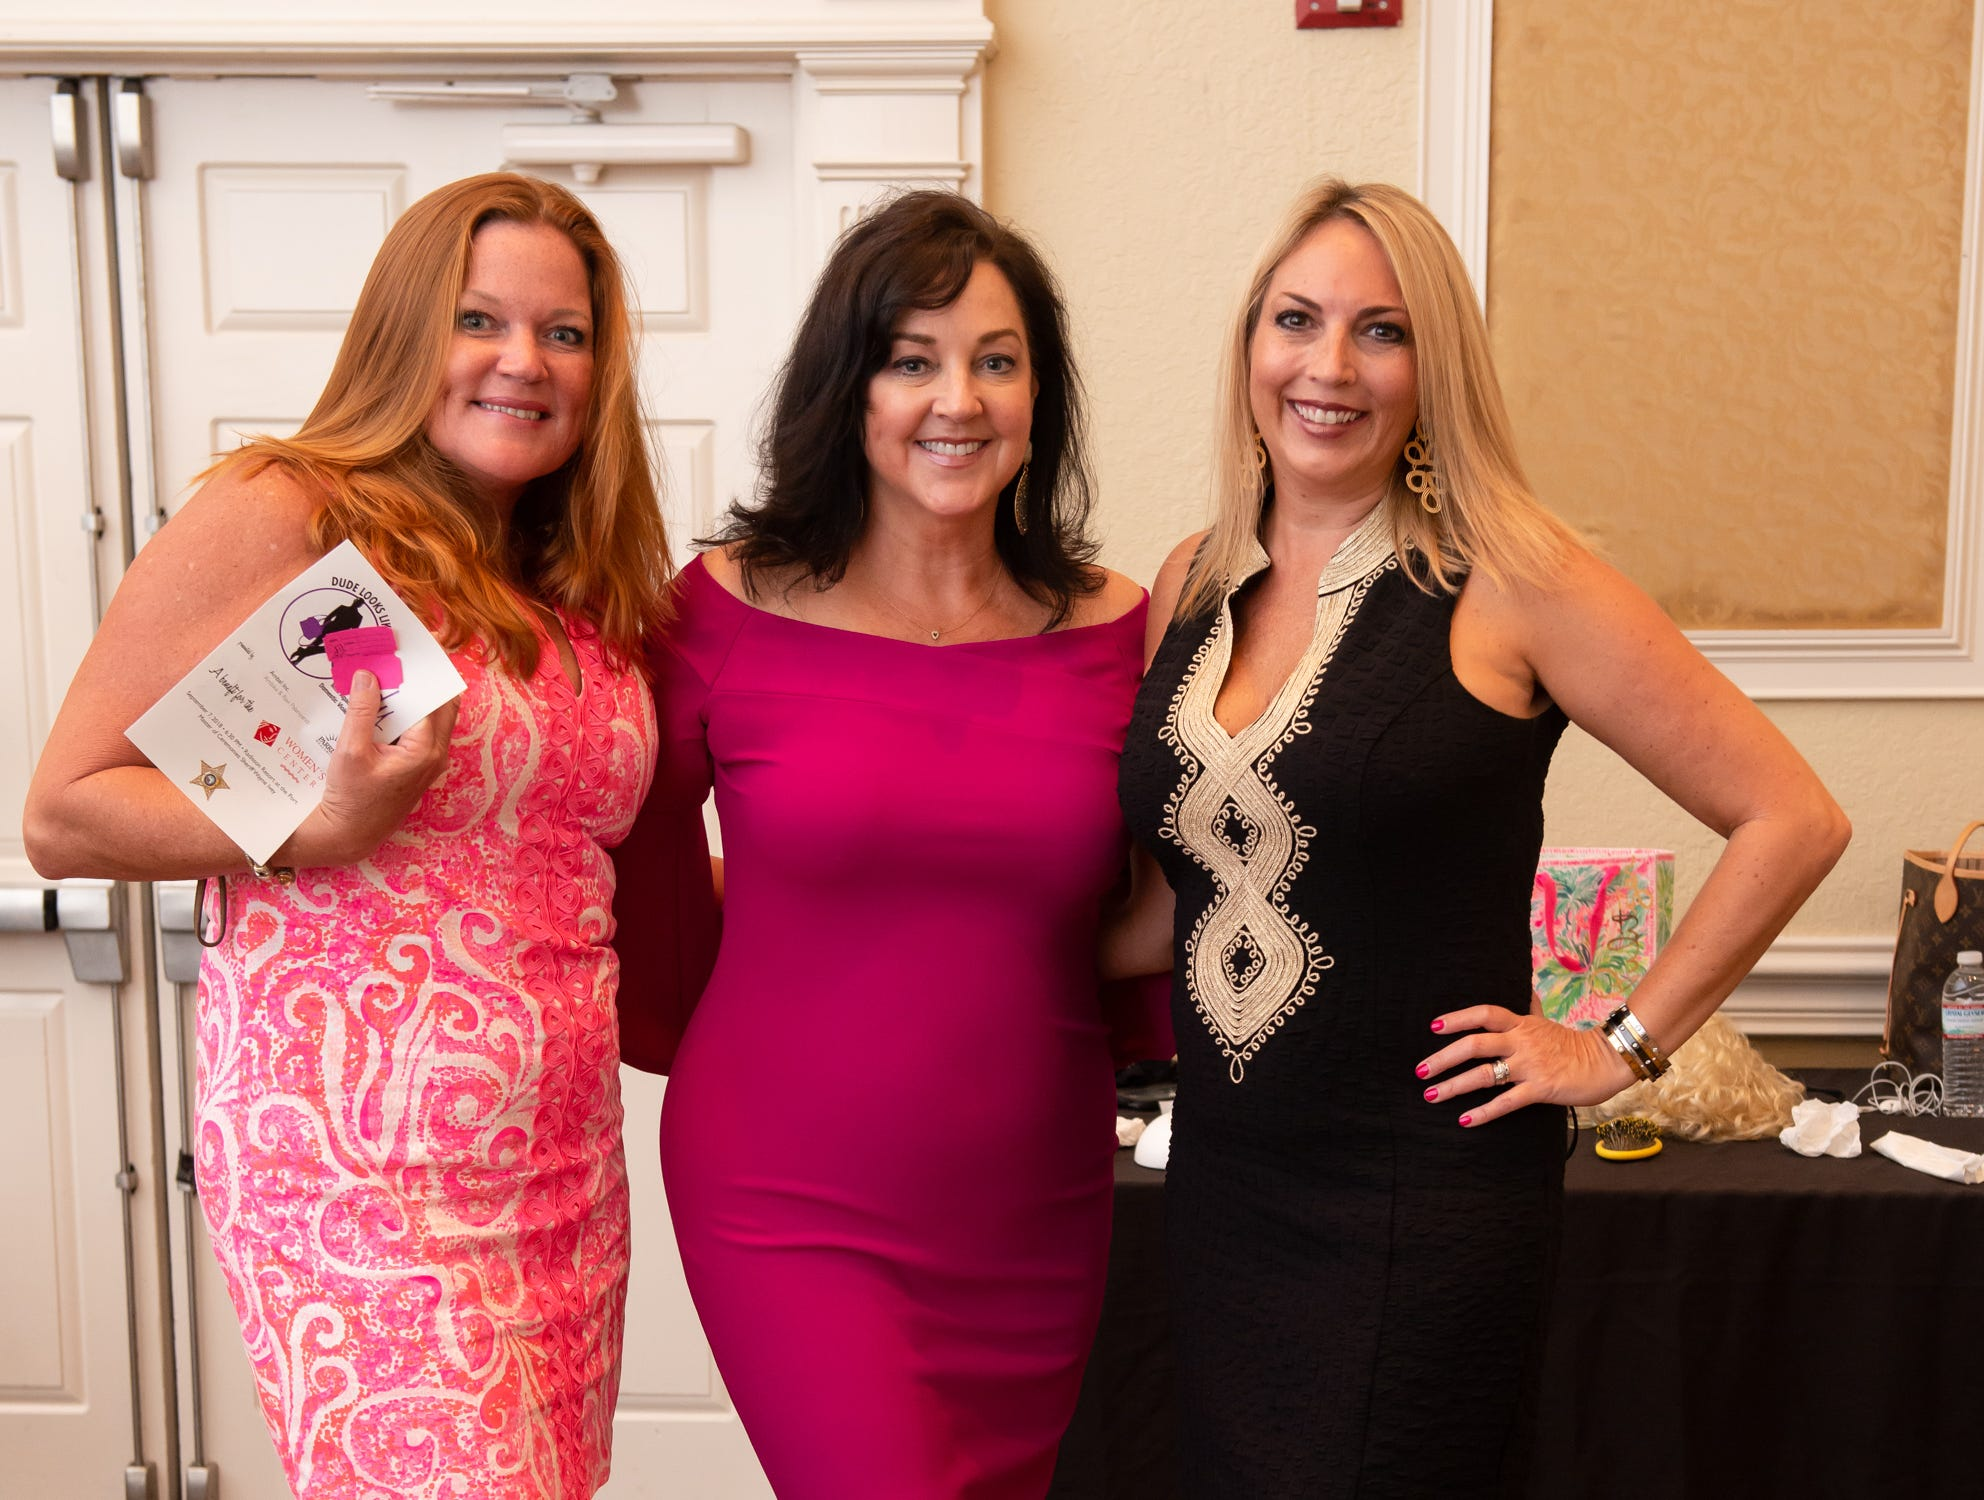 """Kelly Camirand, Lori Sutherland and Jennifer Dodge at """"Dude Looks Like a Lady"""" event benefitting the Women's Center."""